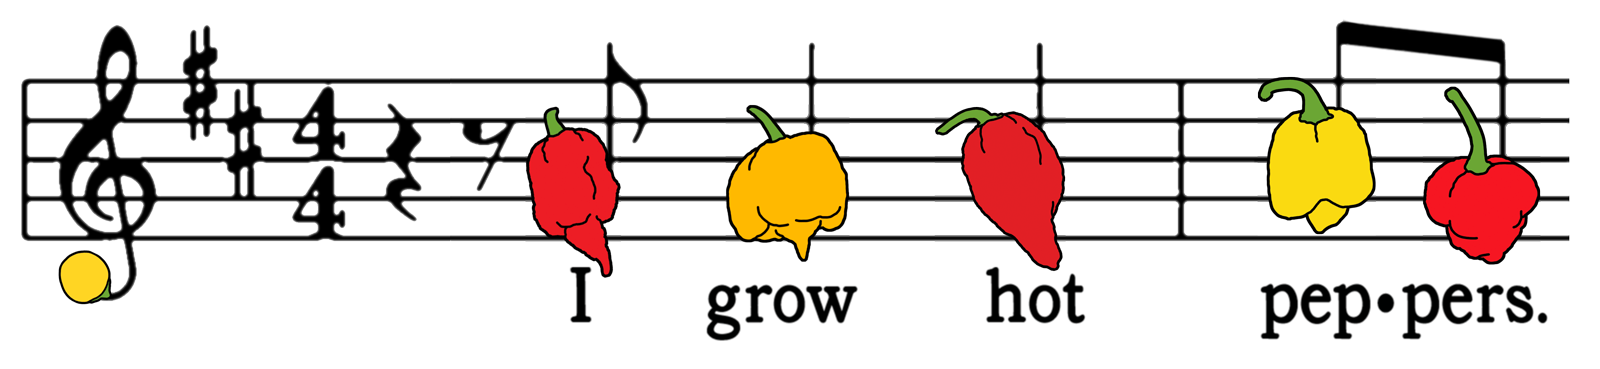 "Musical staff with hot peppers as notes. Below are the words ""I Grow Hot Peppers"""